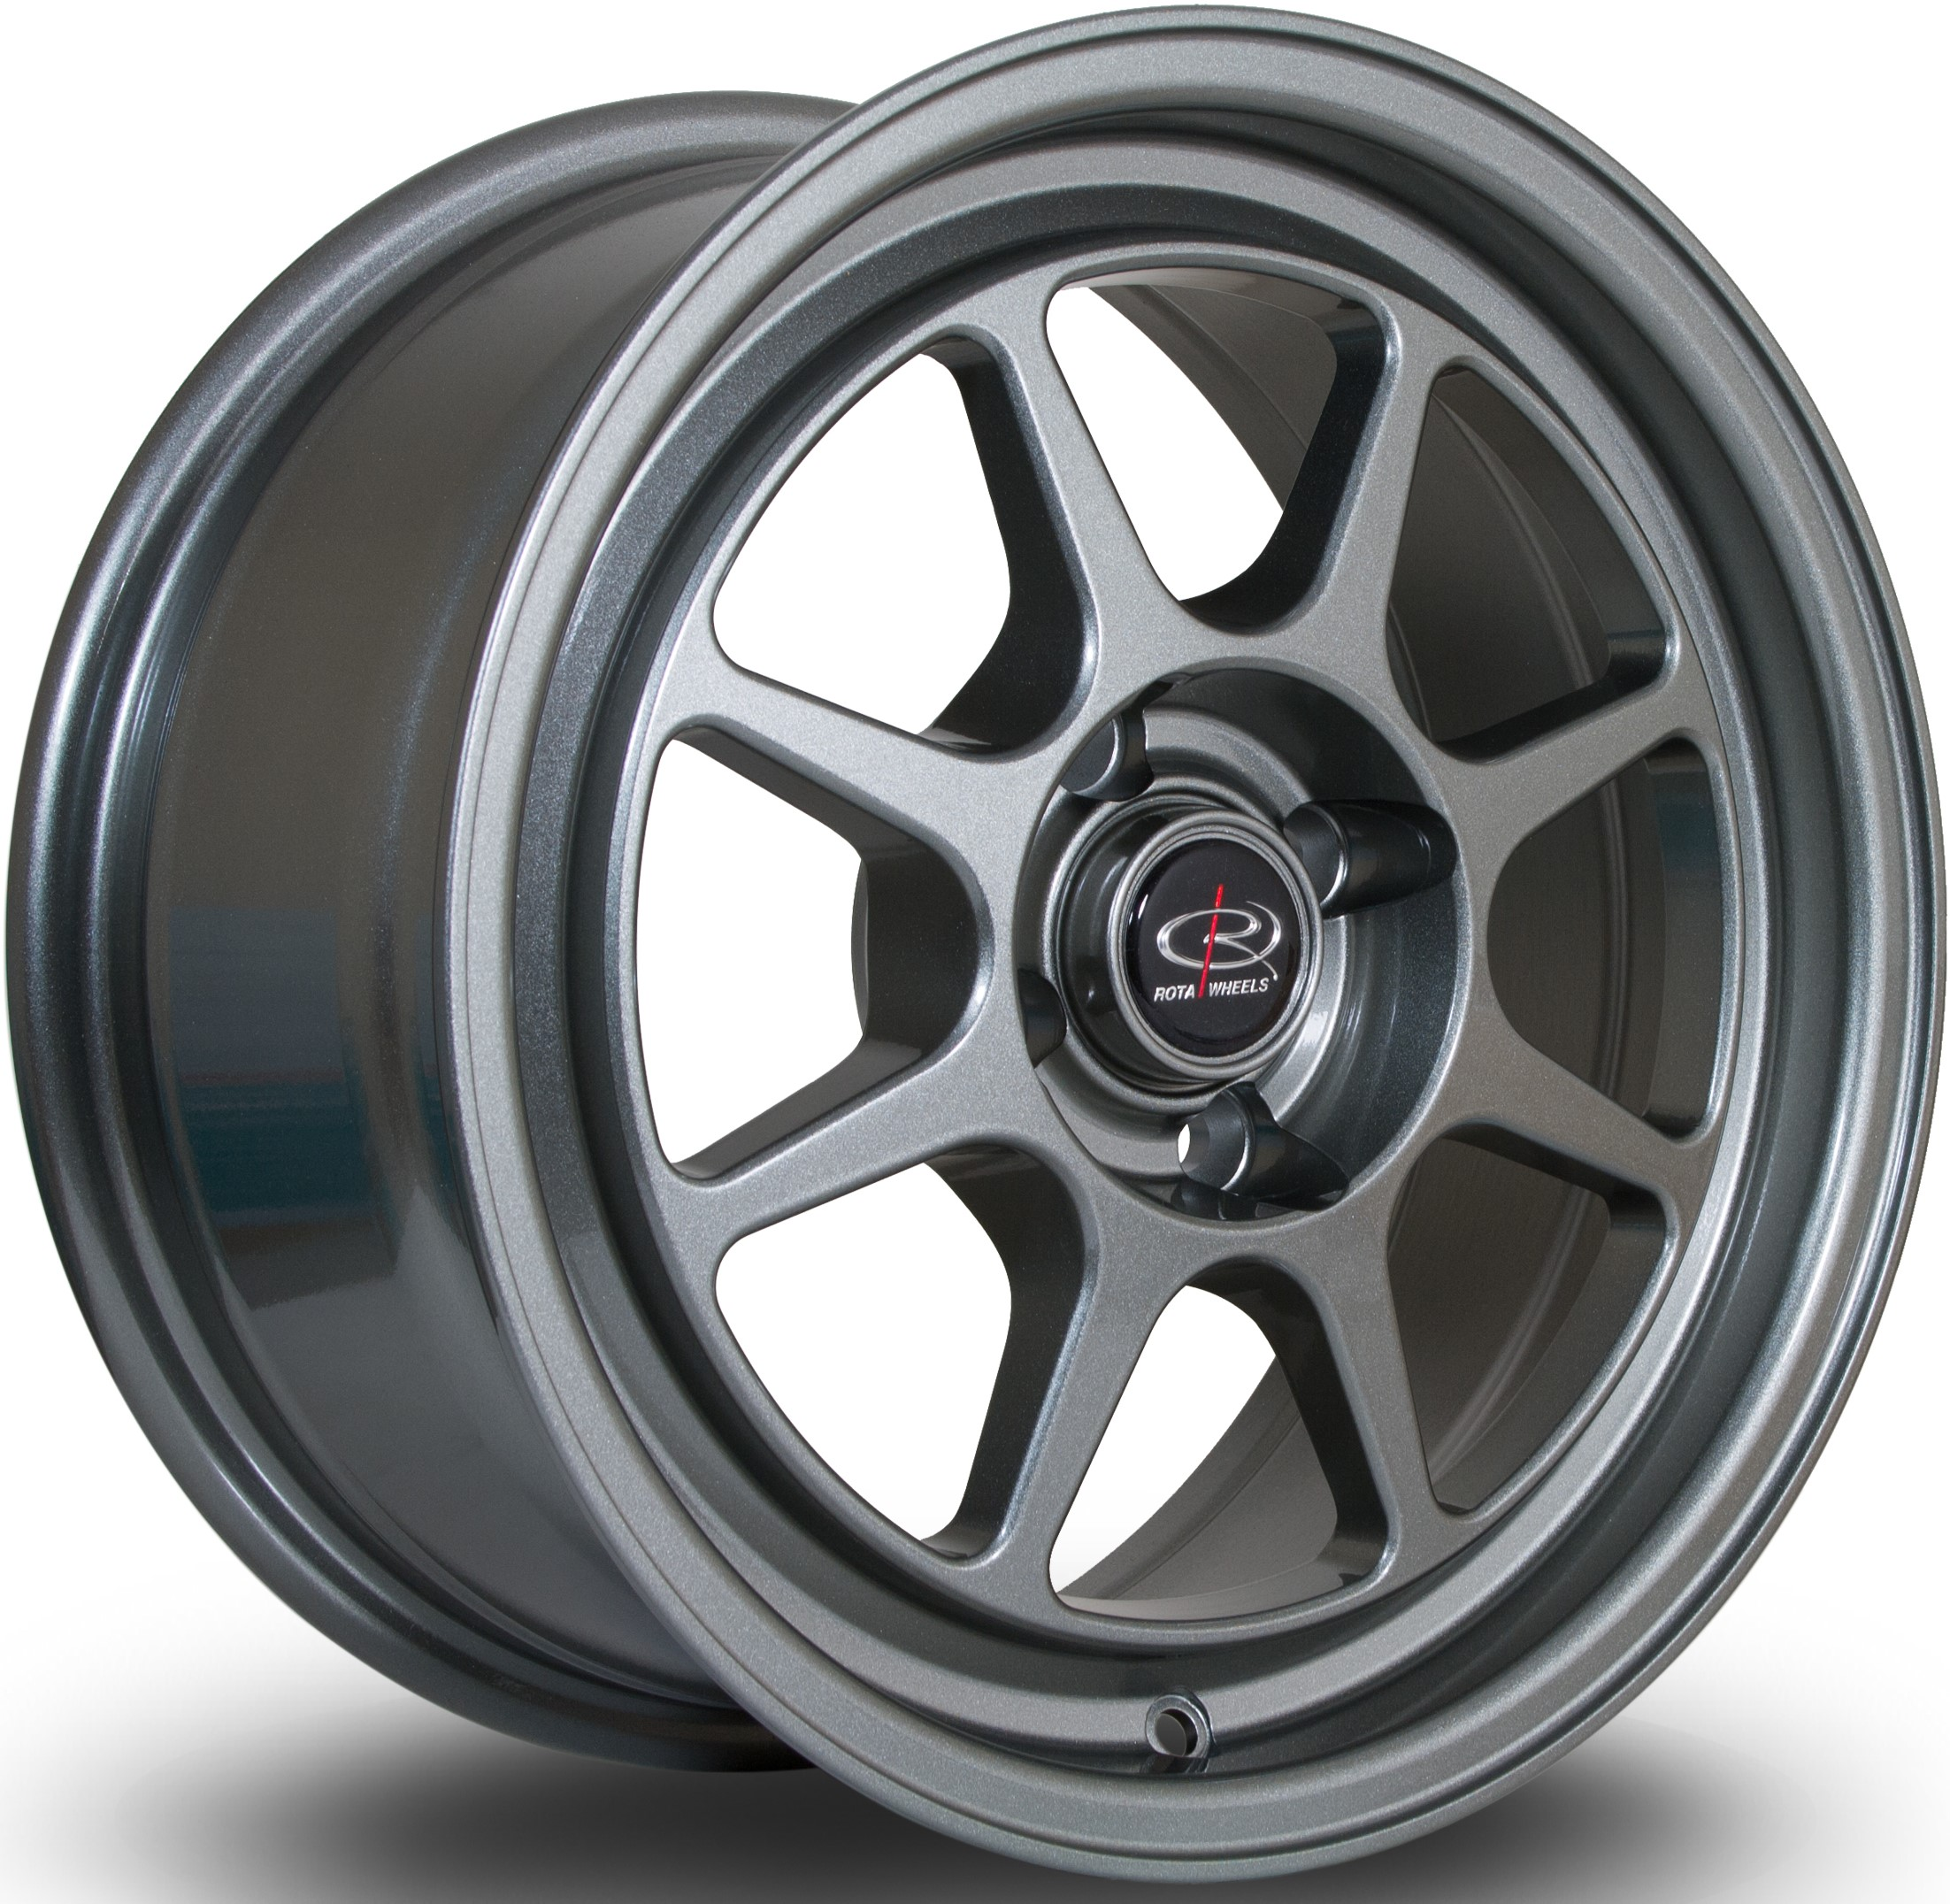 Rota - Spec8 (Steel Grey)